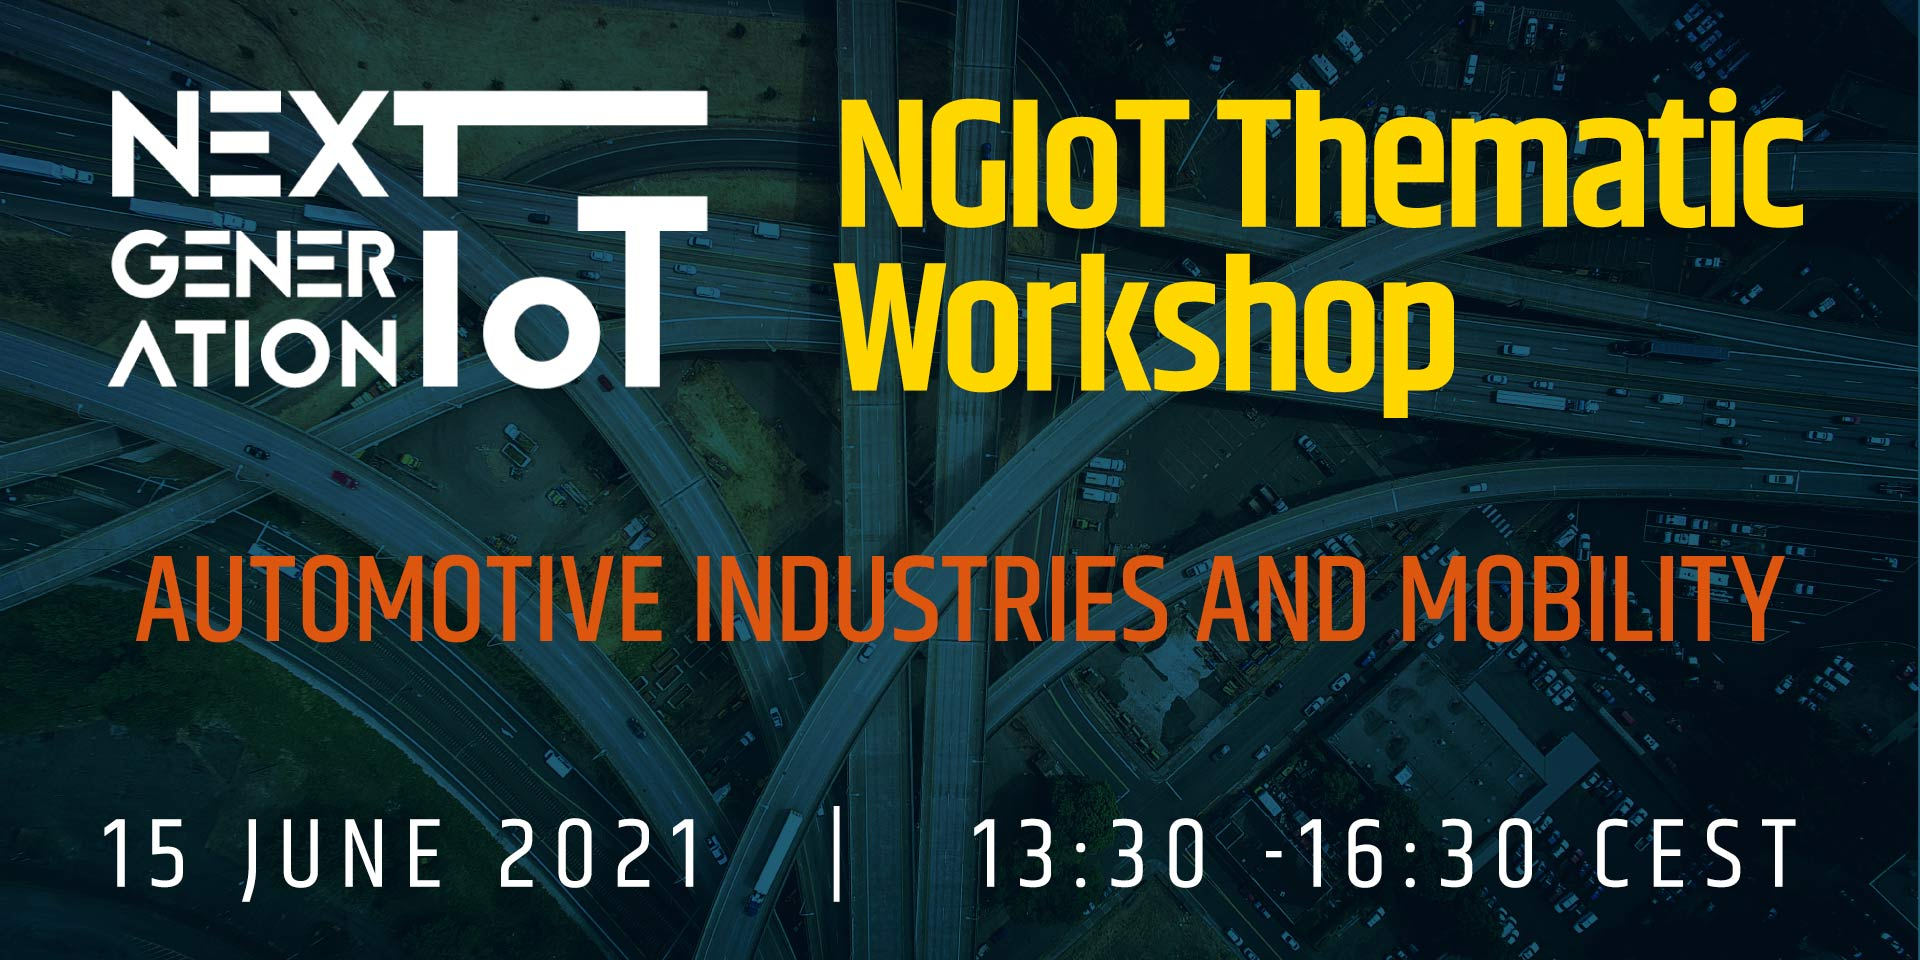 NGIoT Thematic Workshop | Automotive industries and mobility